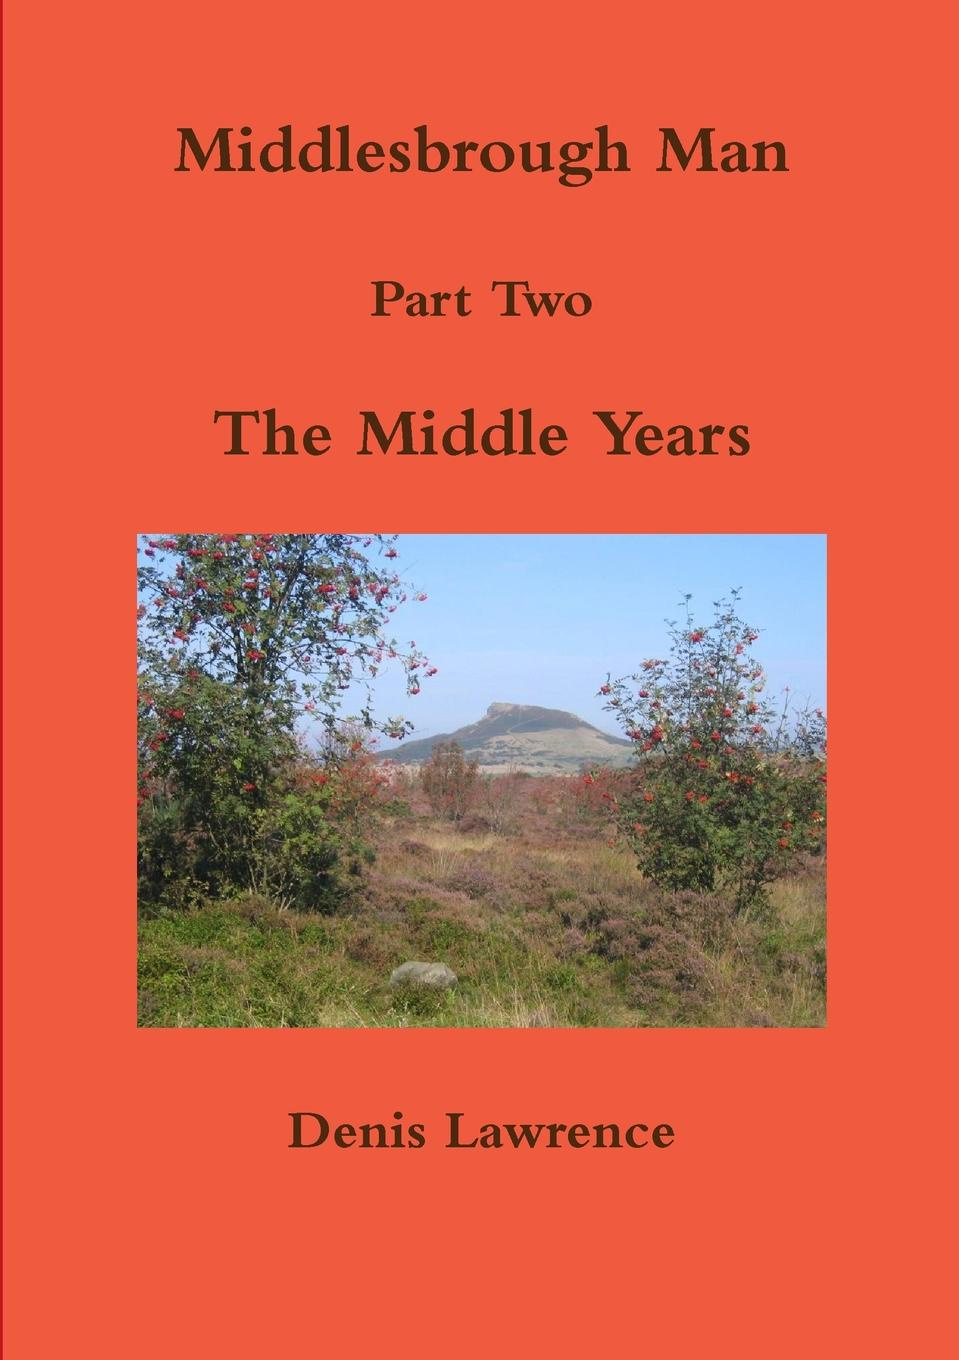 denis lawrence Middlesbrough Man Part Two The Middle Years denis lawrence middlesbrough man part two the middle years